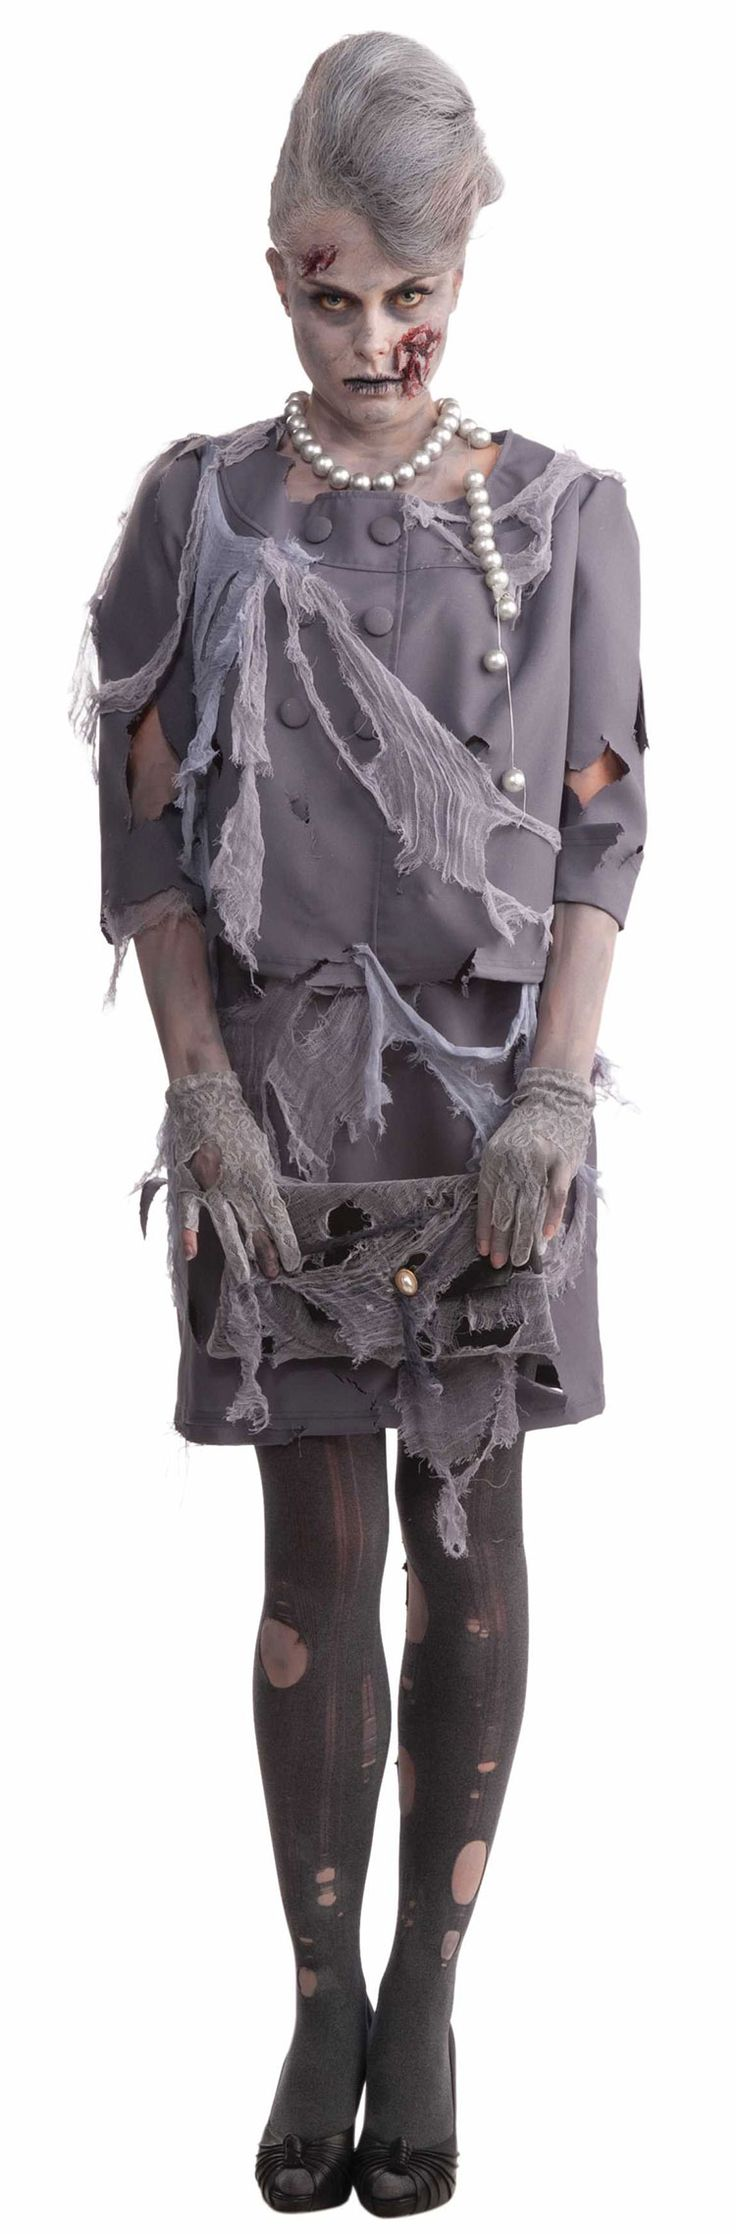 45 best Zombie costumes for Gigi images on Pinterest